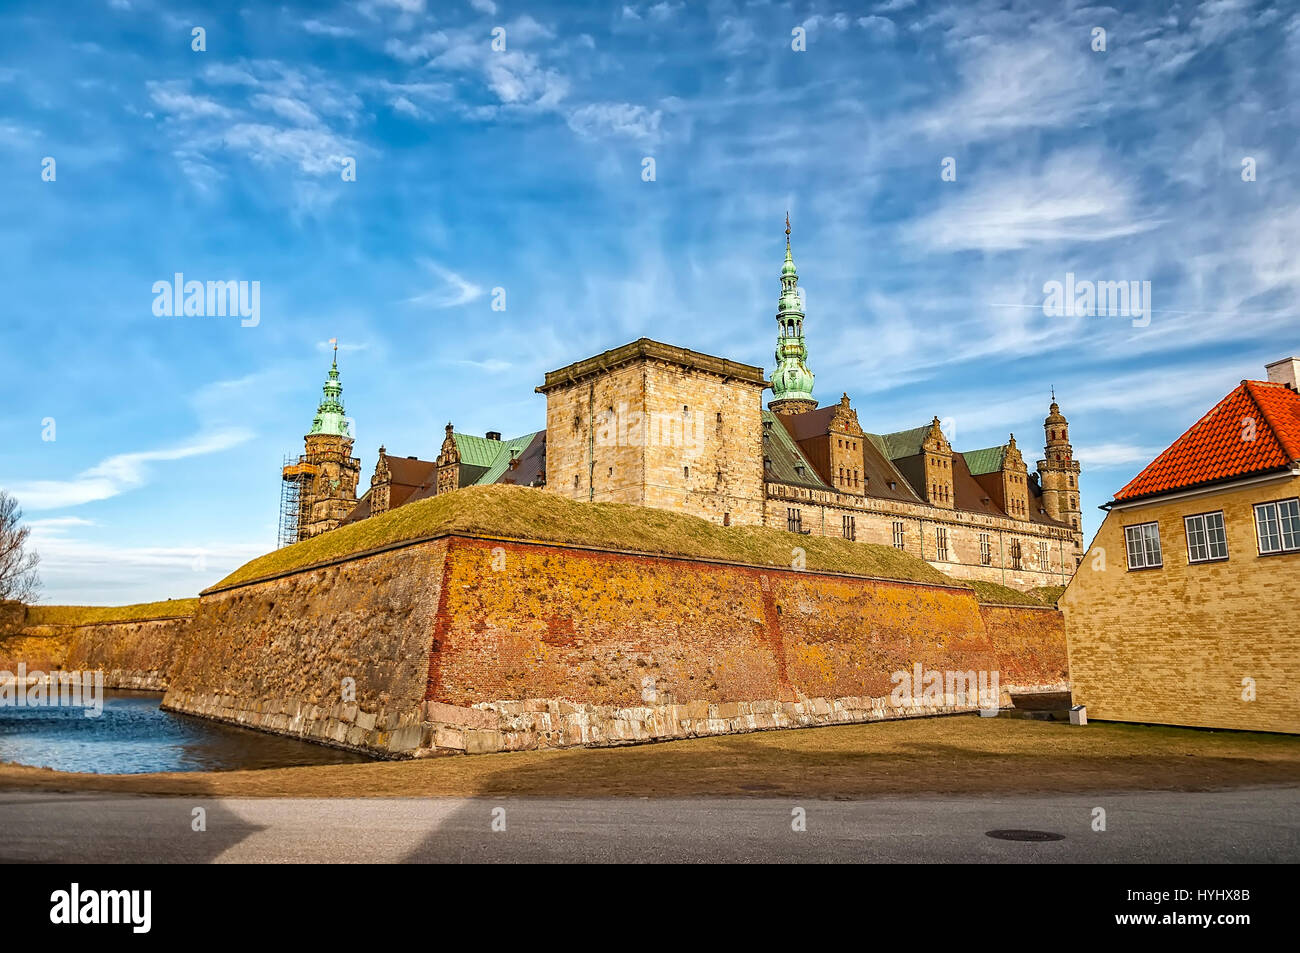 Kronborg castle made famous by William Shakespeare in his play about Hamlet situated in the Danish harbour town - Stock Image